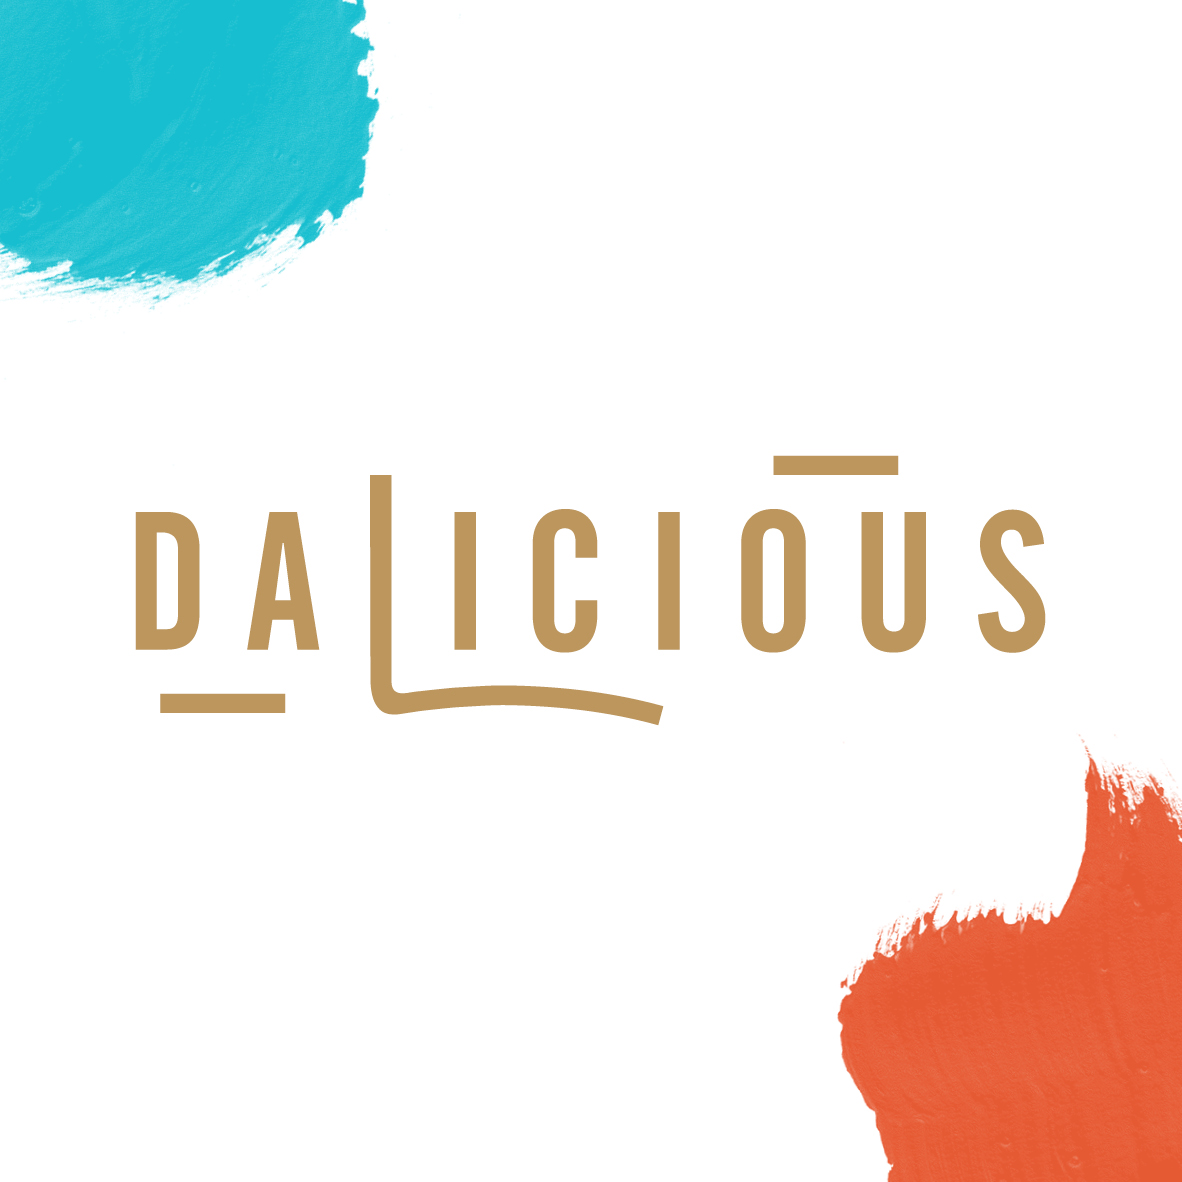 Dalicious by Colourful Lifestyle